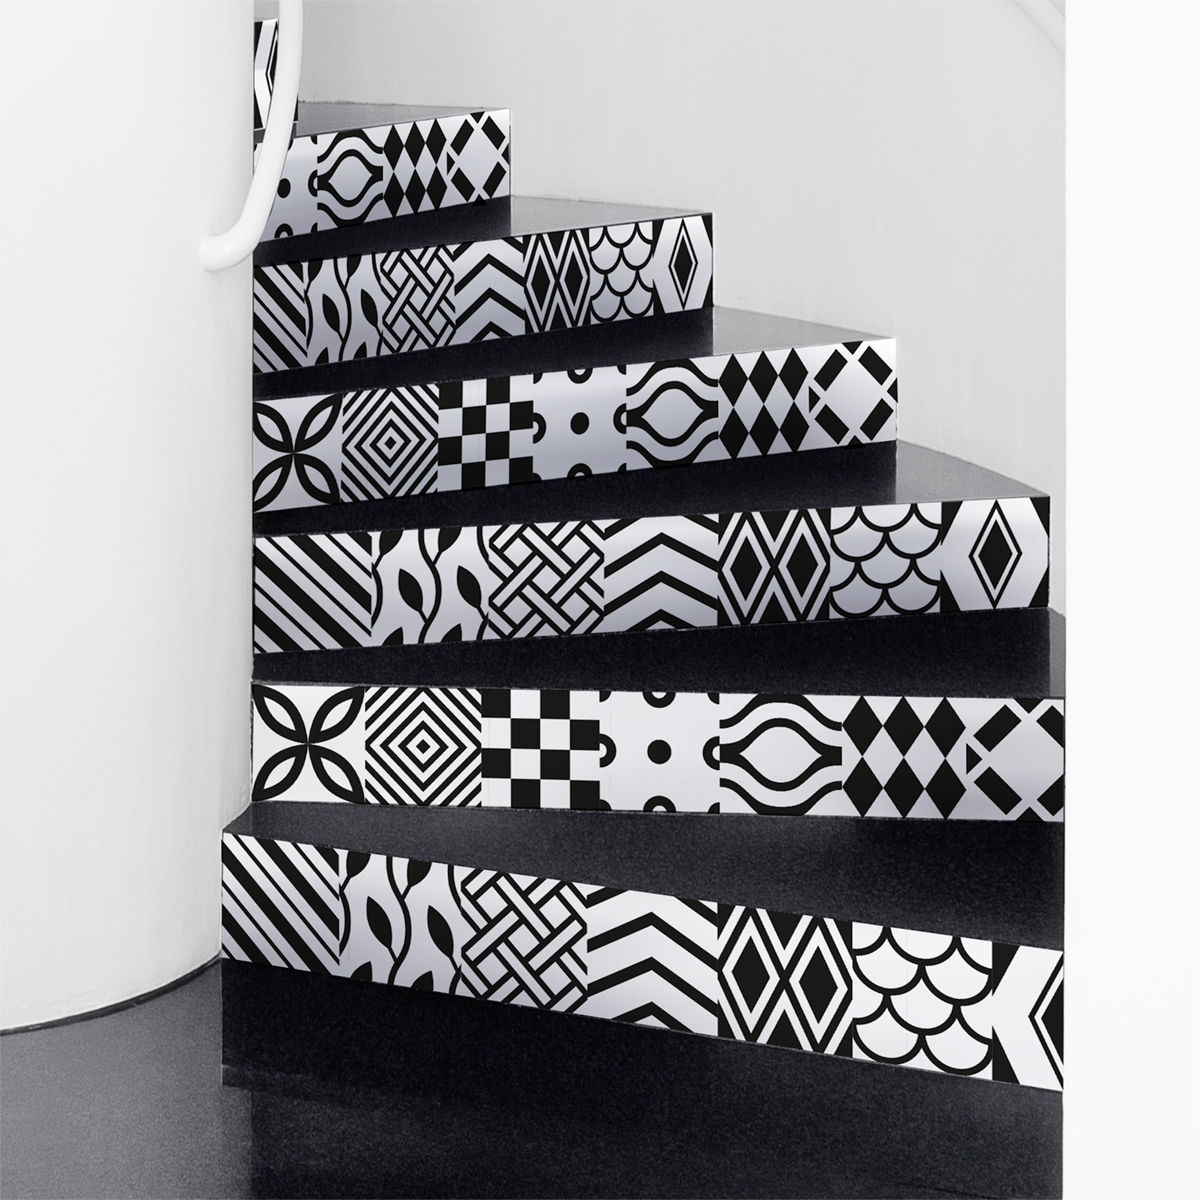 stickers escaliers carreaux de ciment bahuma sticker. Black Bedroom Furniture Sets. Home Design Ideas